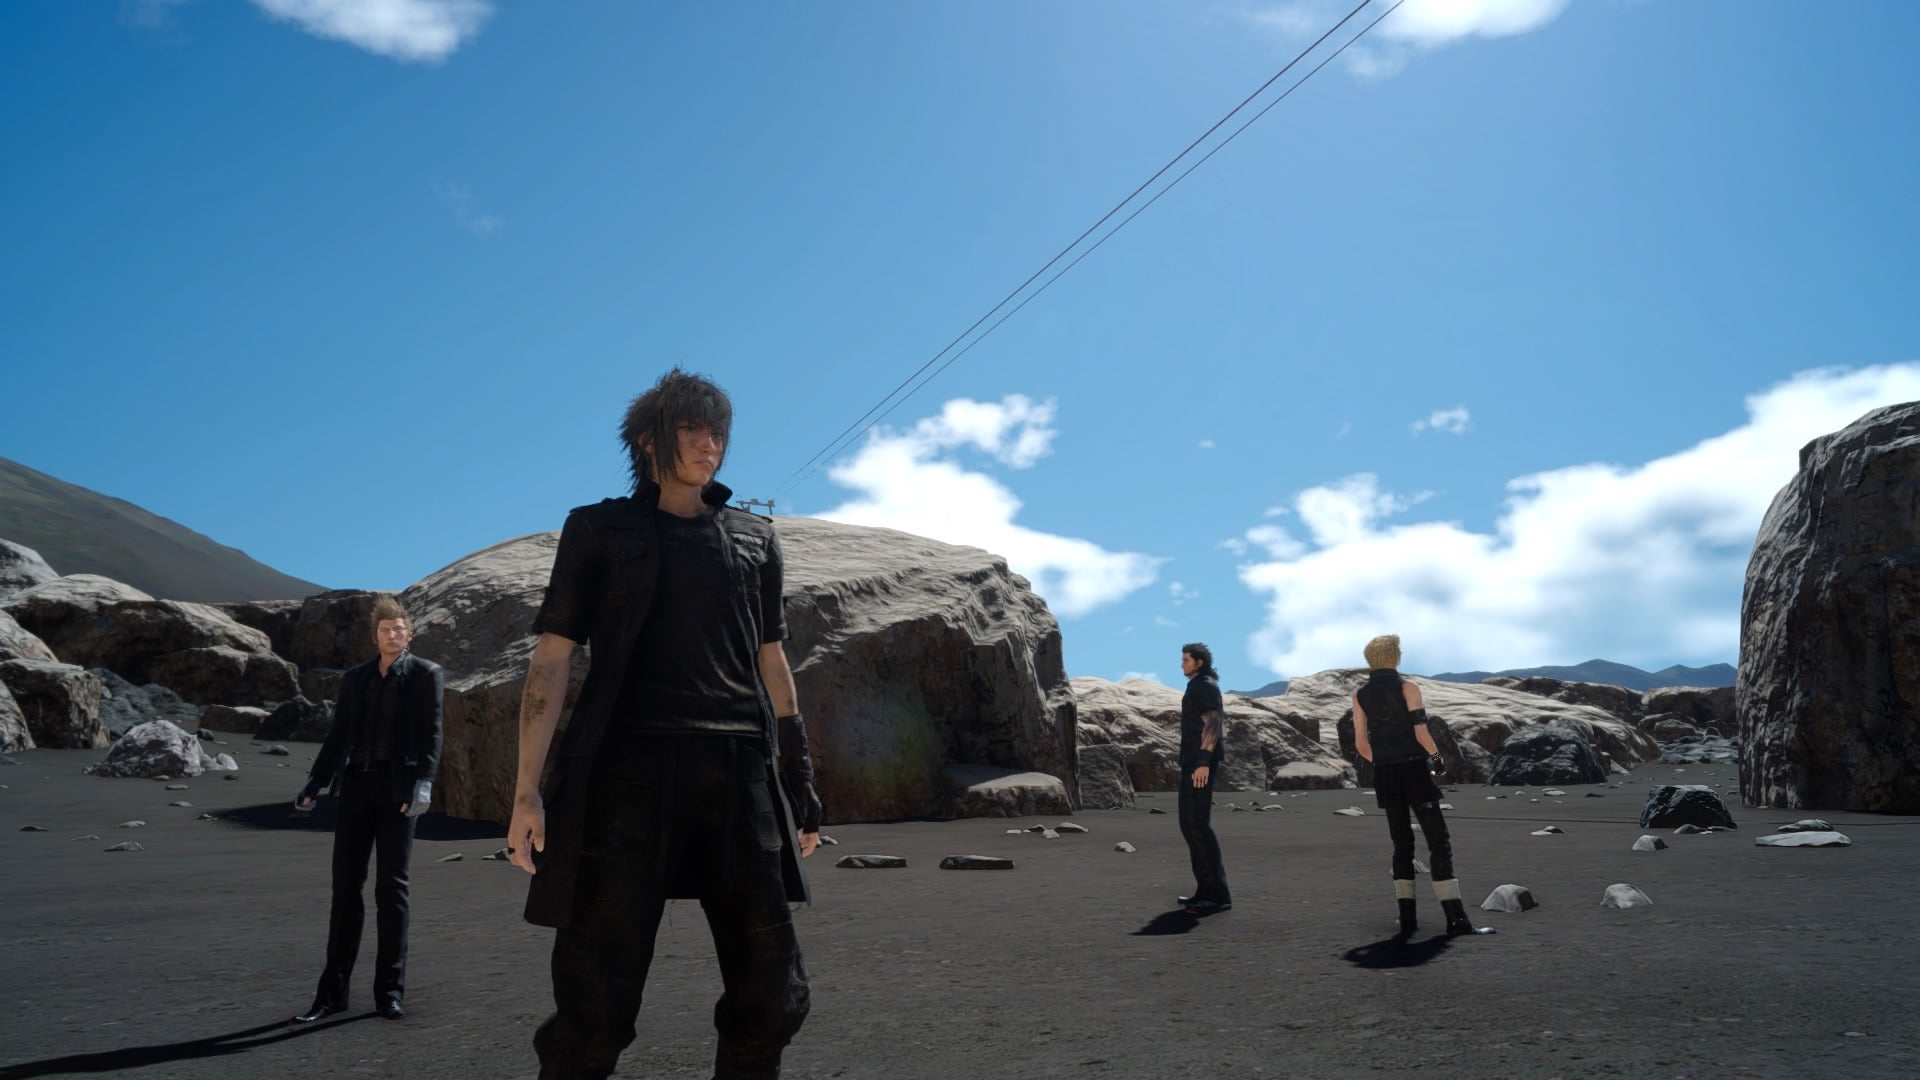 Final Fantasy 15 Patch Will Add More Story, Improve Chapter 13